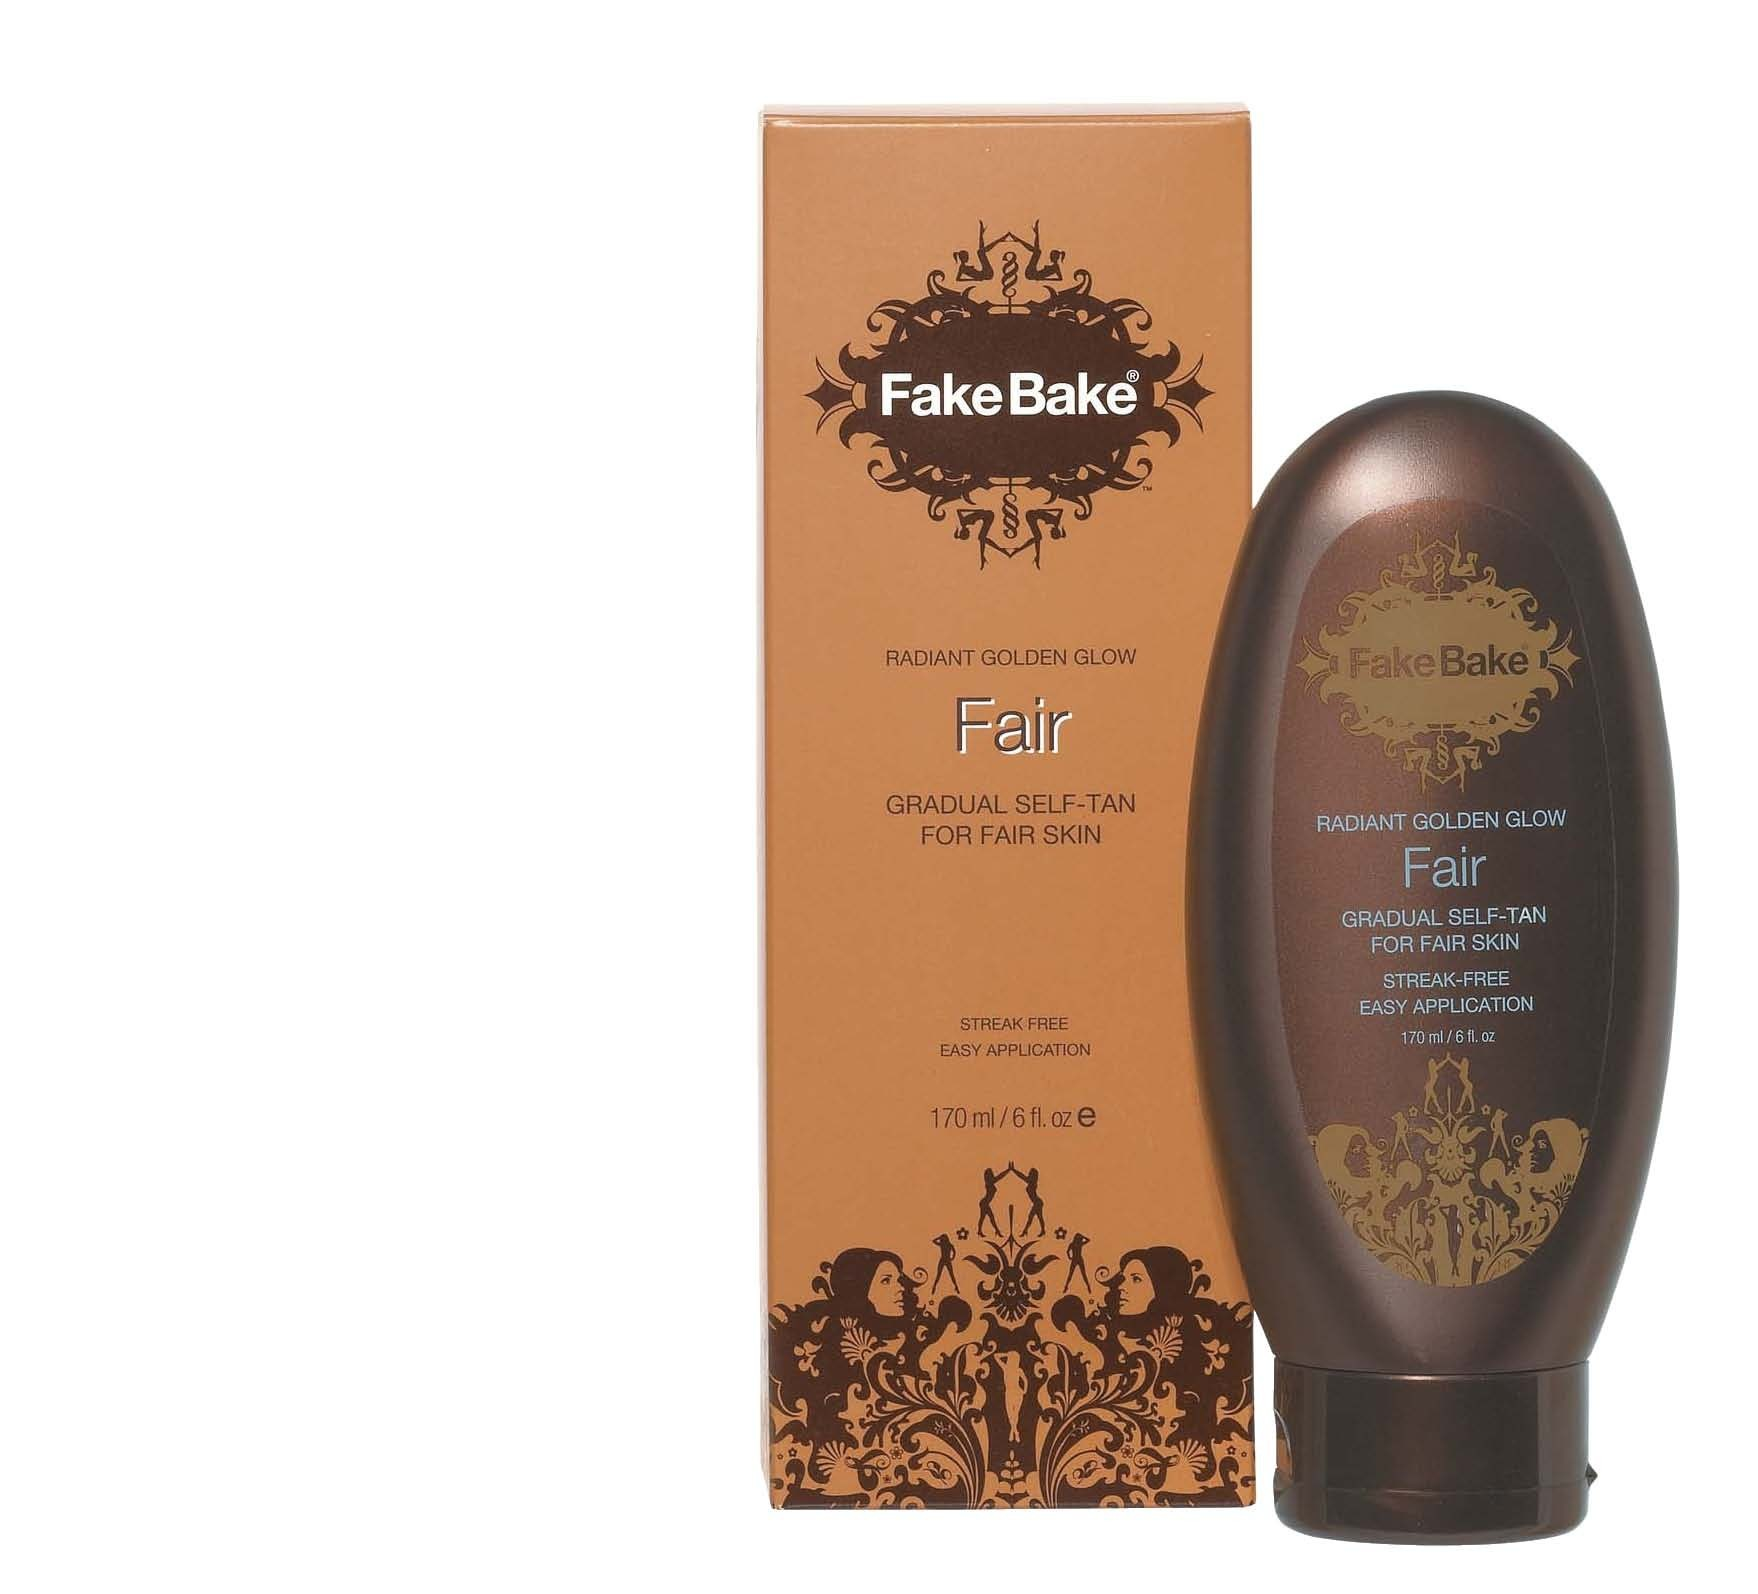 Fake Bake Fair Self Tanning lotion 6 oz